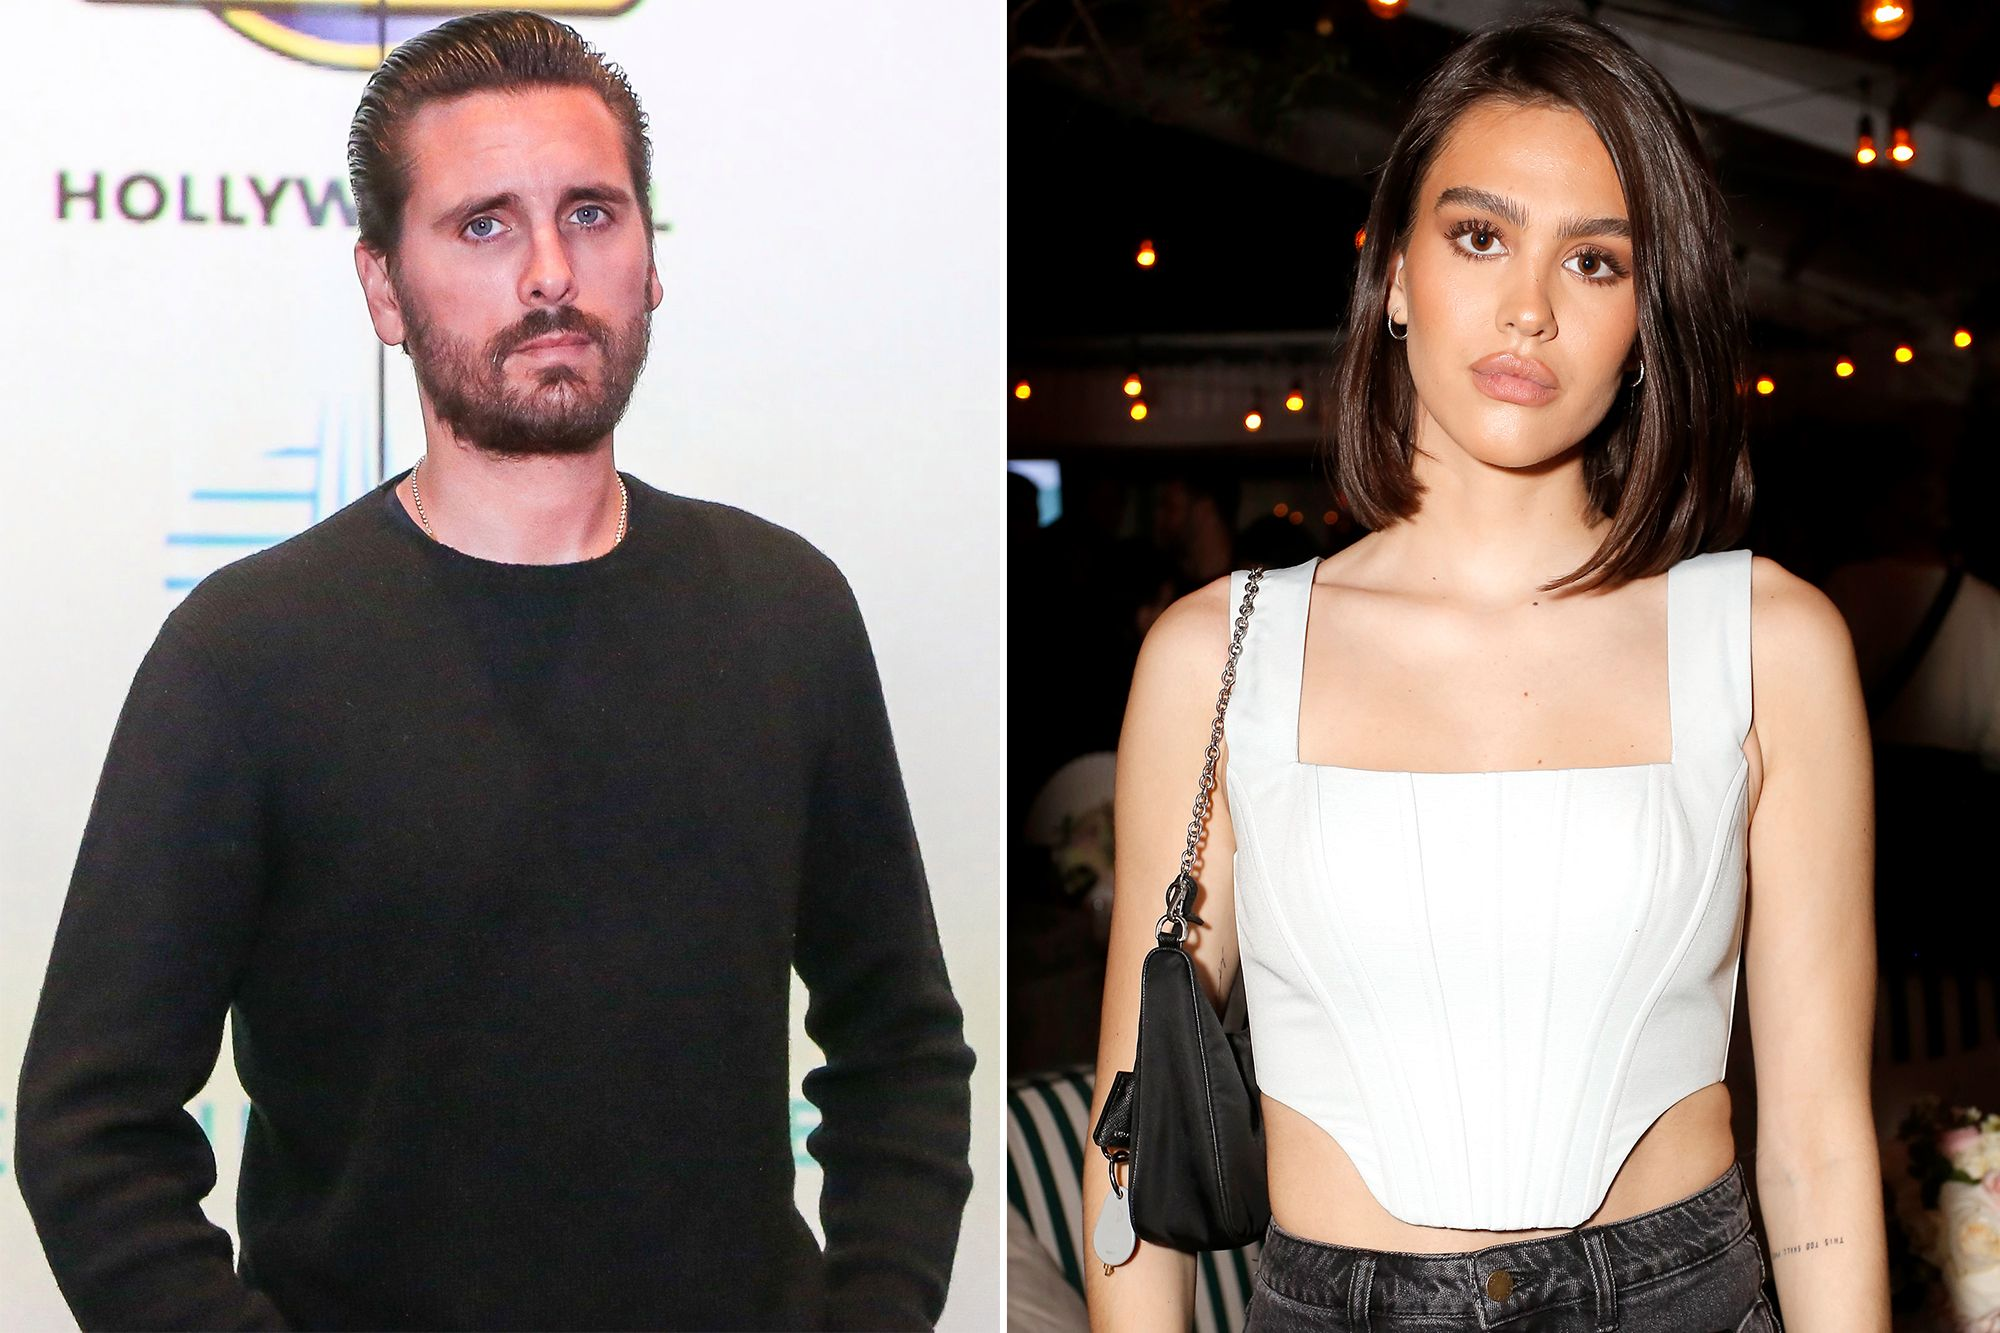 Scott Disick Ready To Settle Down With Amelia Hamlin? – Source Reveals!